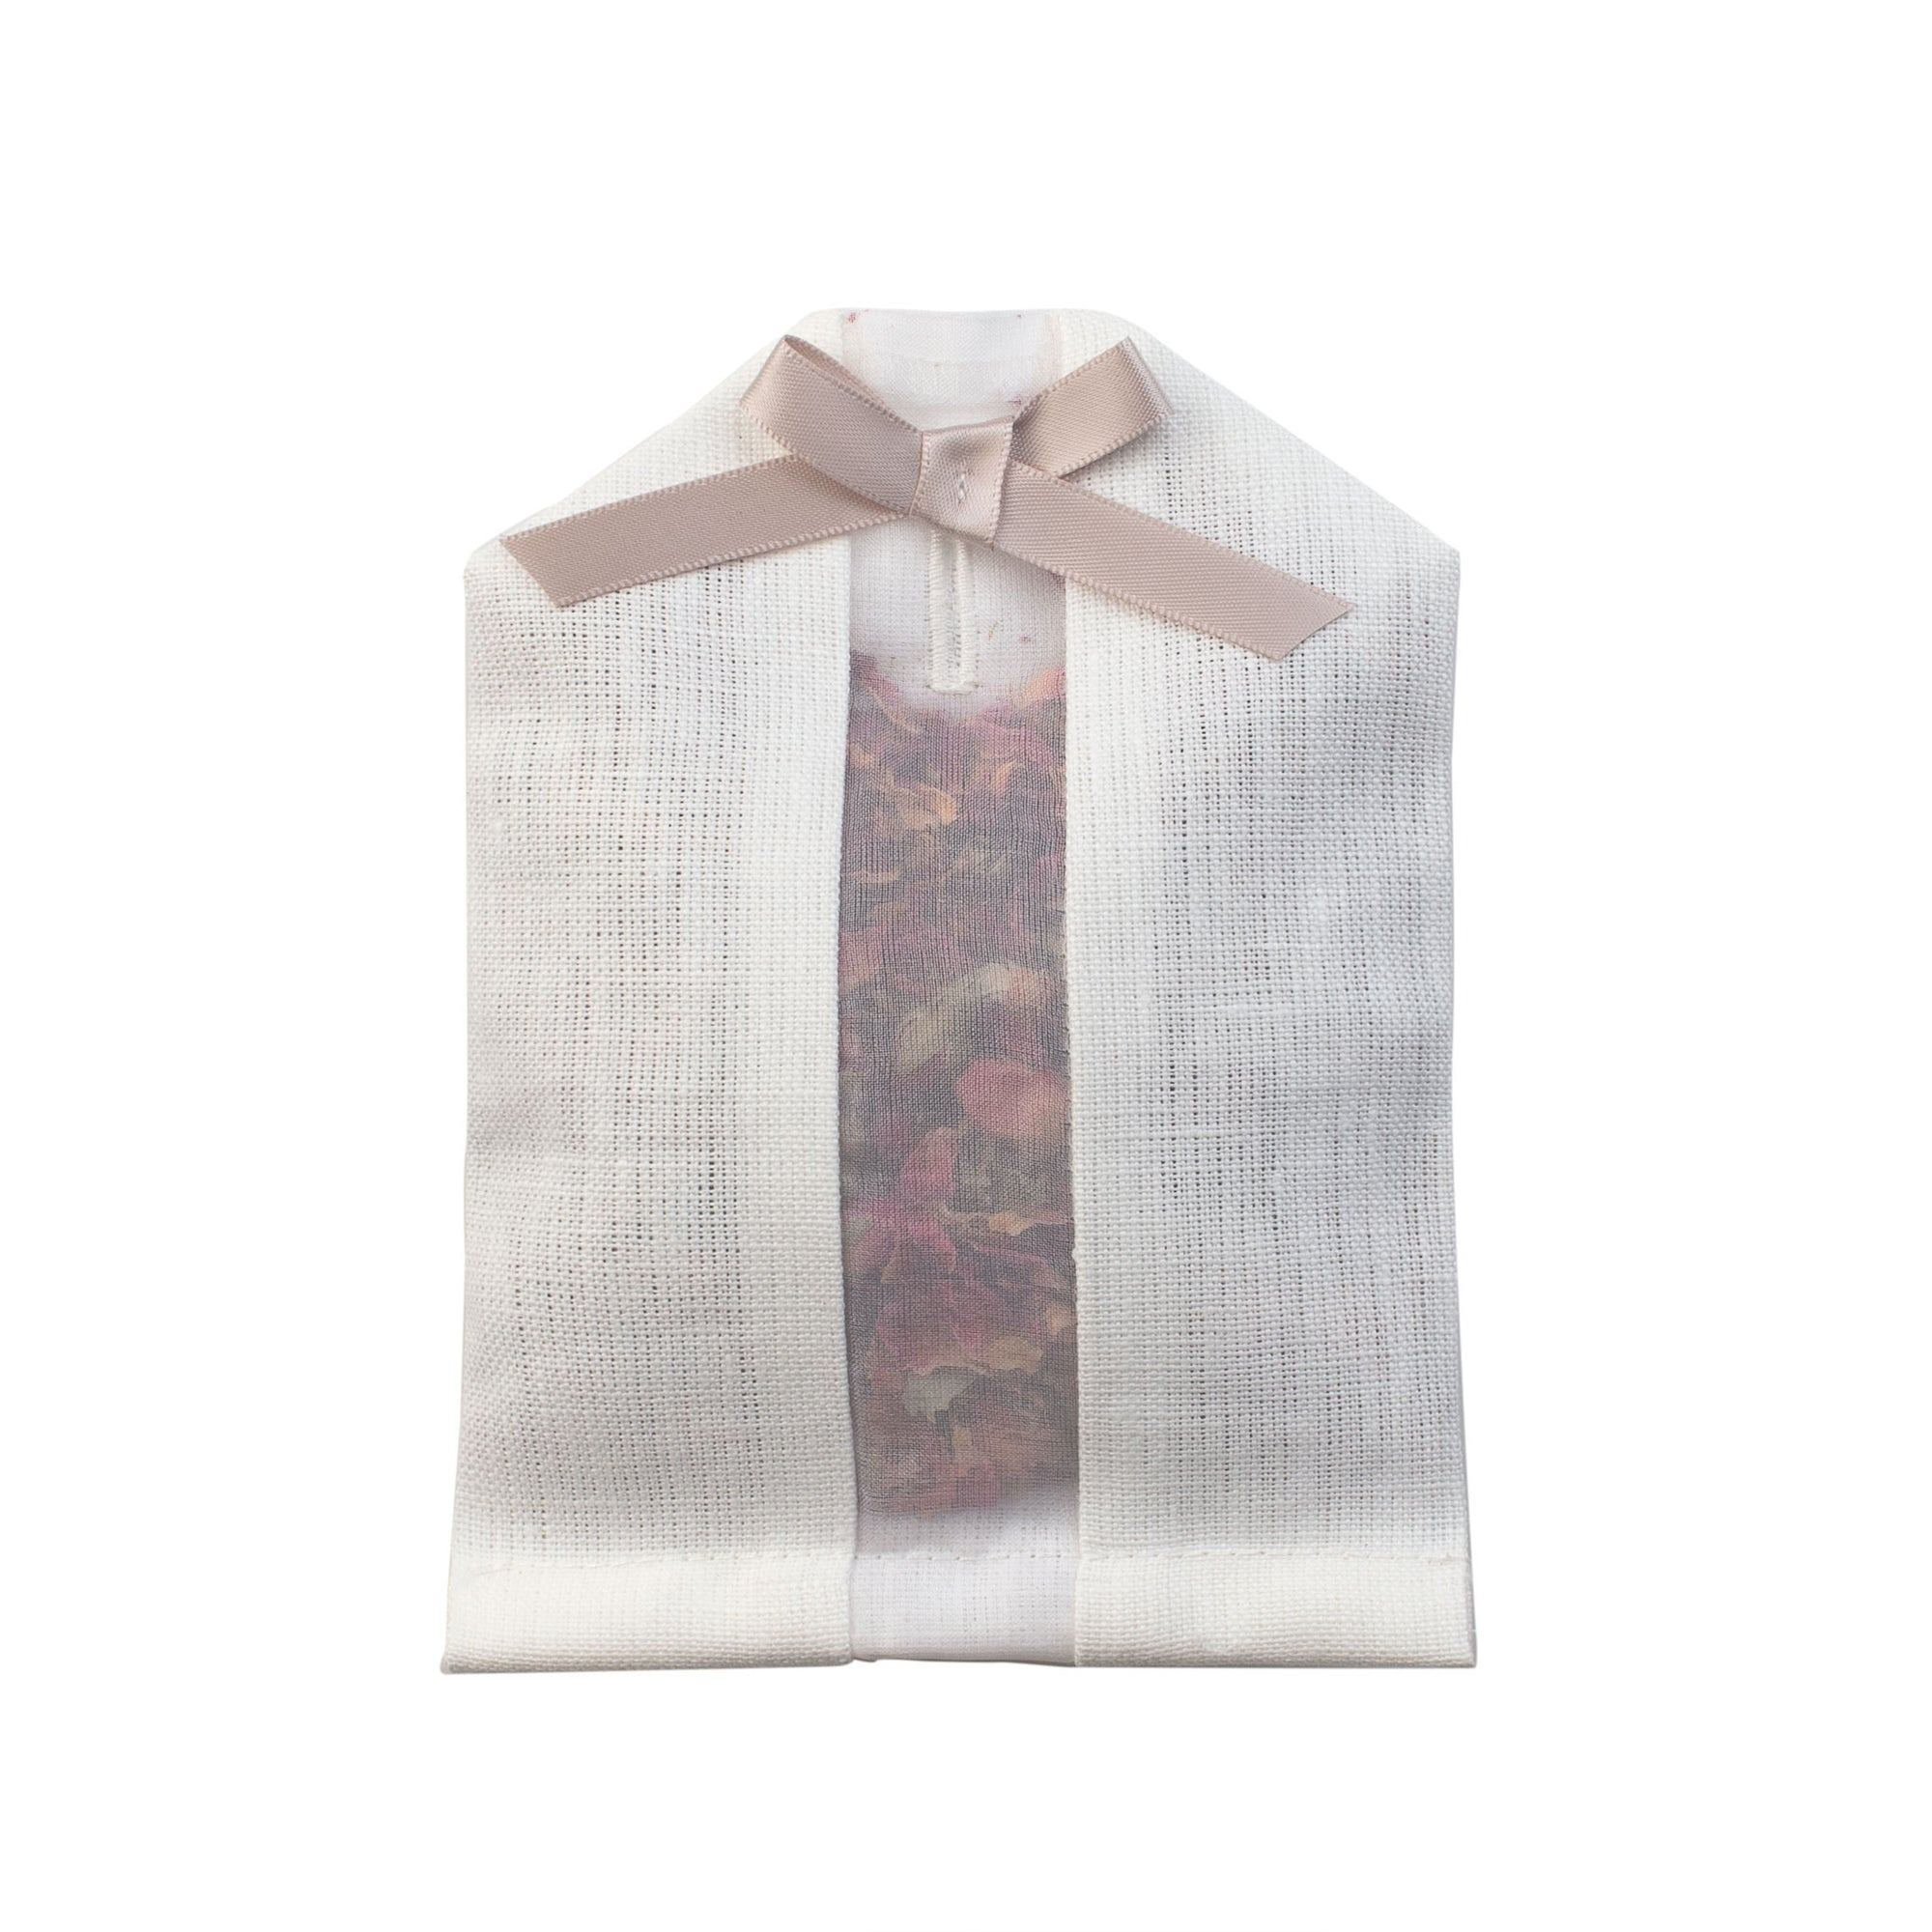 Dried rose petals filled inside of an ivory linen hanger sachet